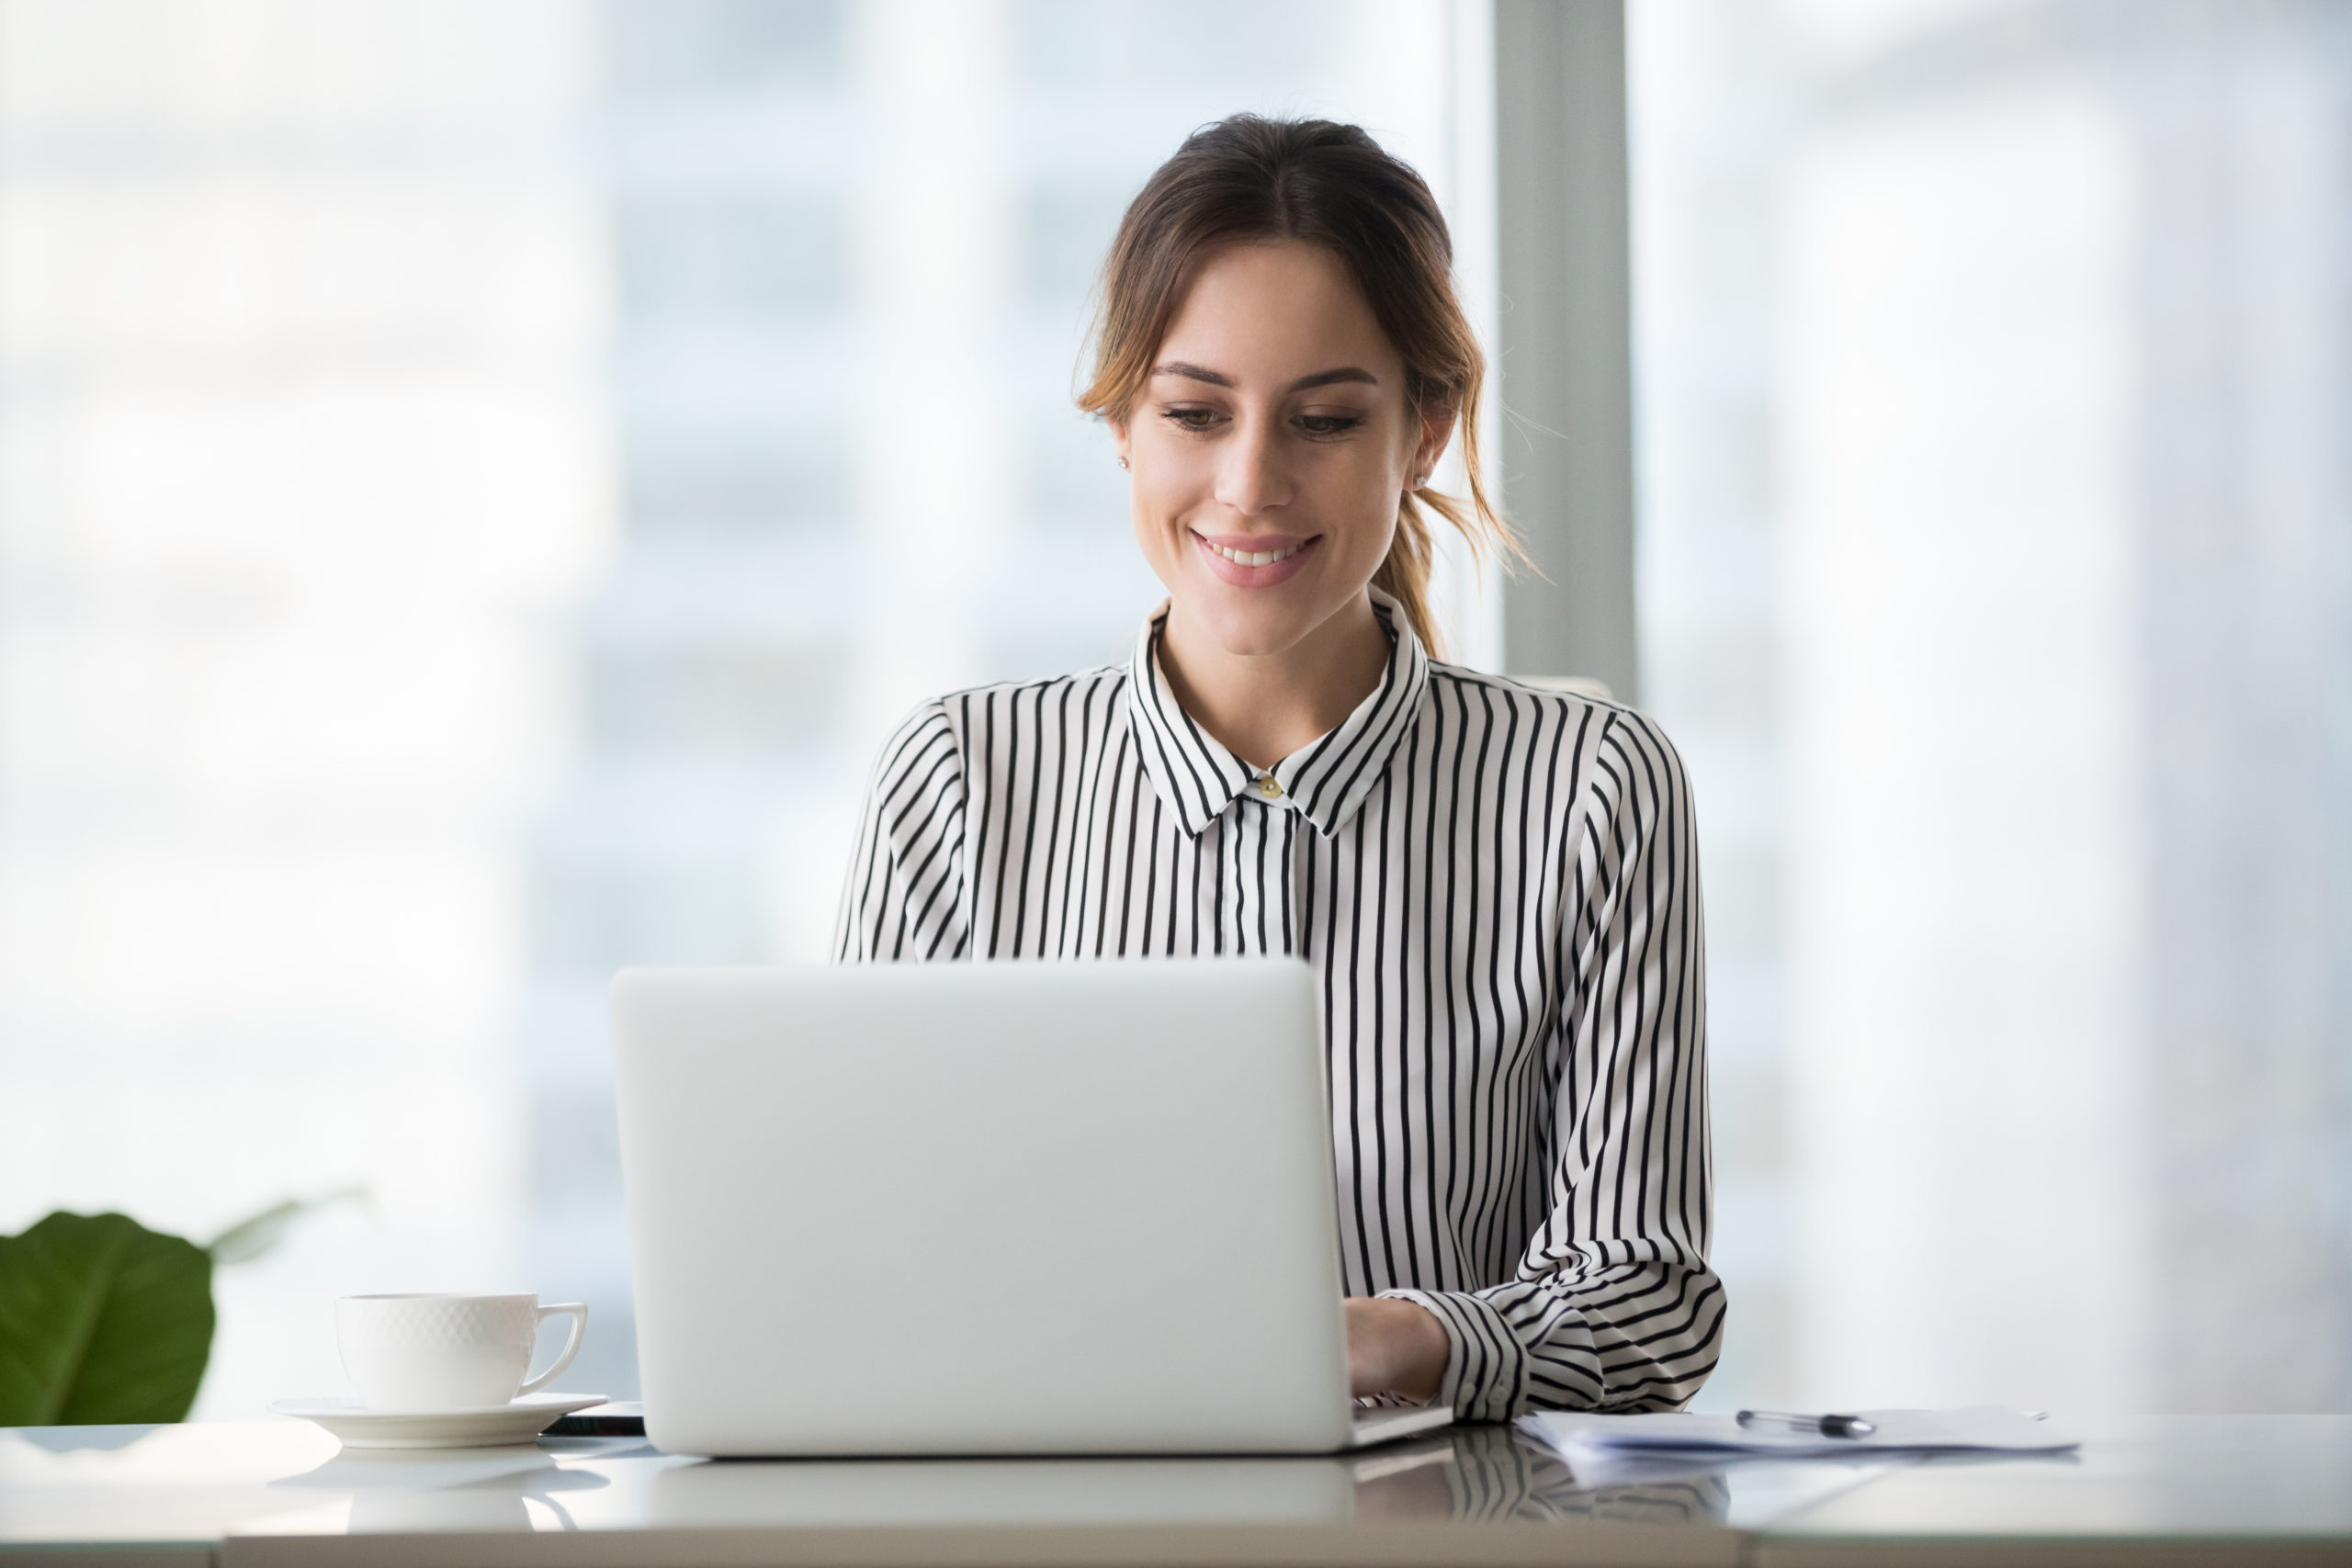 Woman taking part in Webinar sitting in front of computer PC Mac